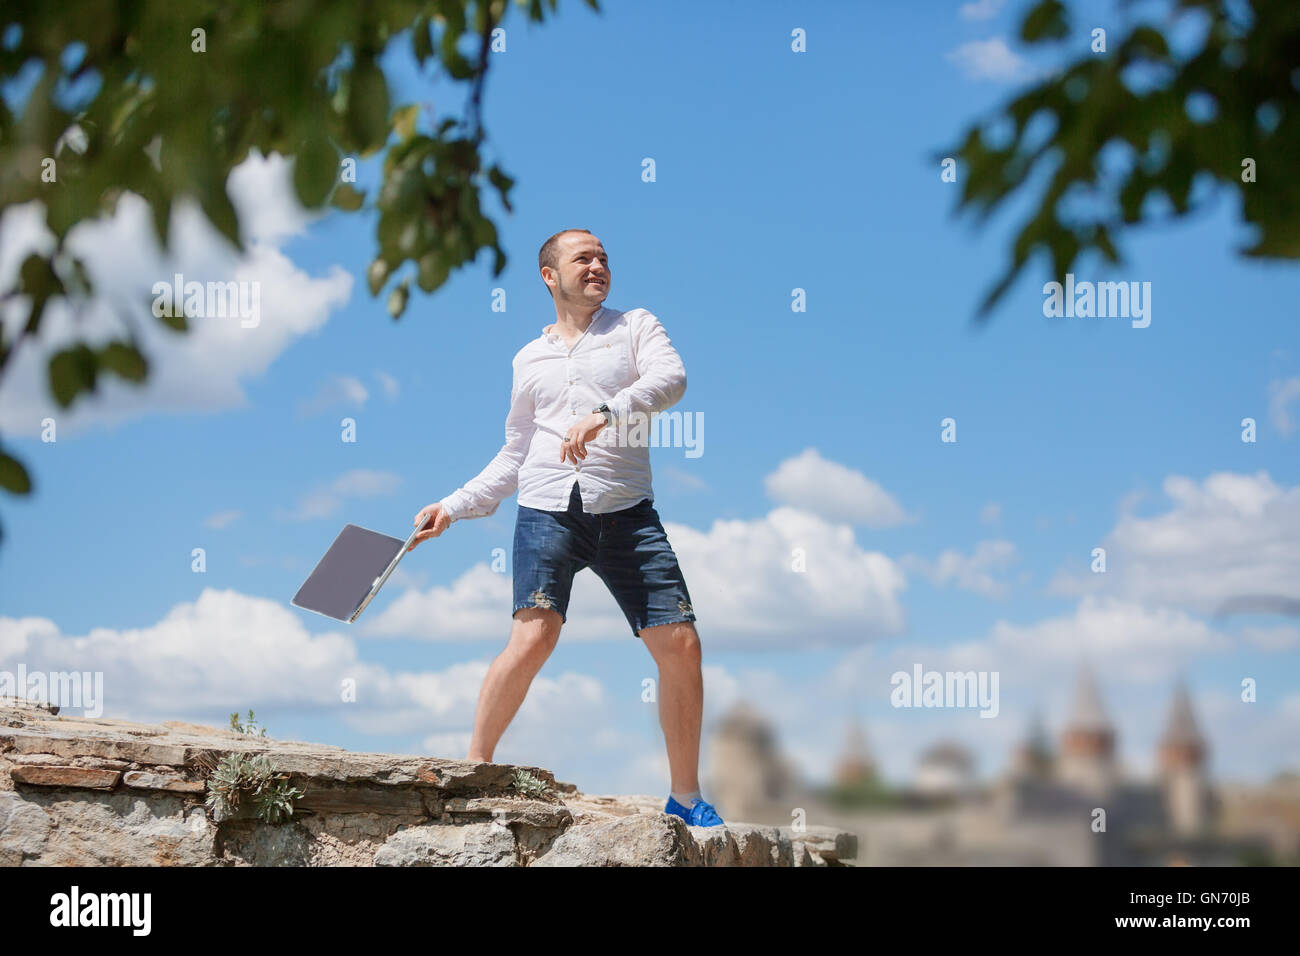 man throws notebook against blue sky - Stock Image